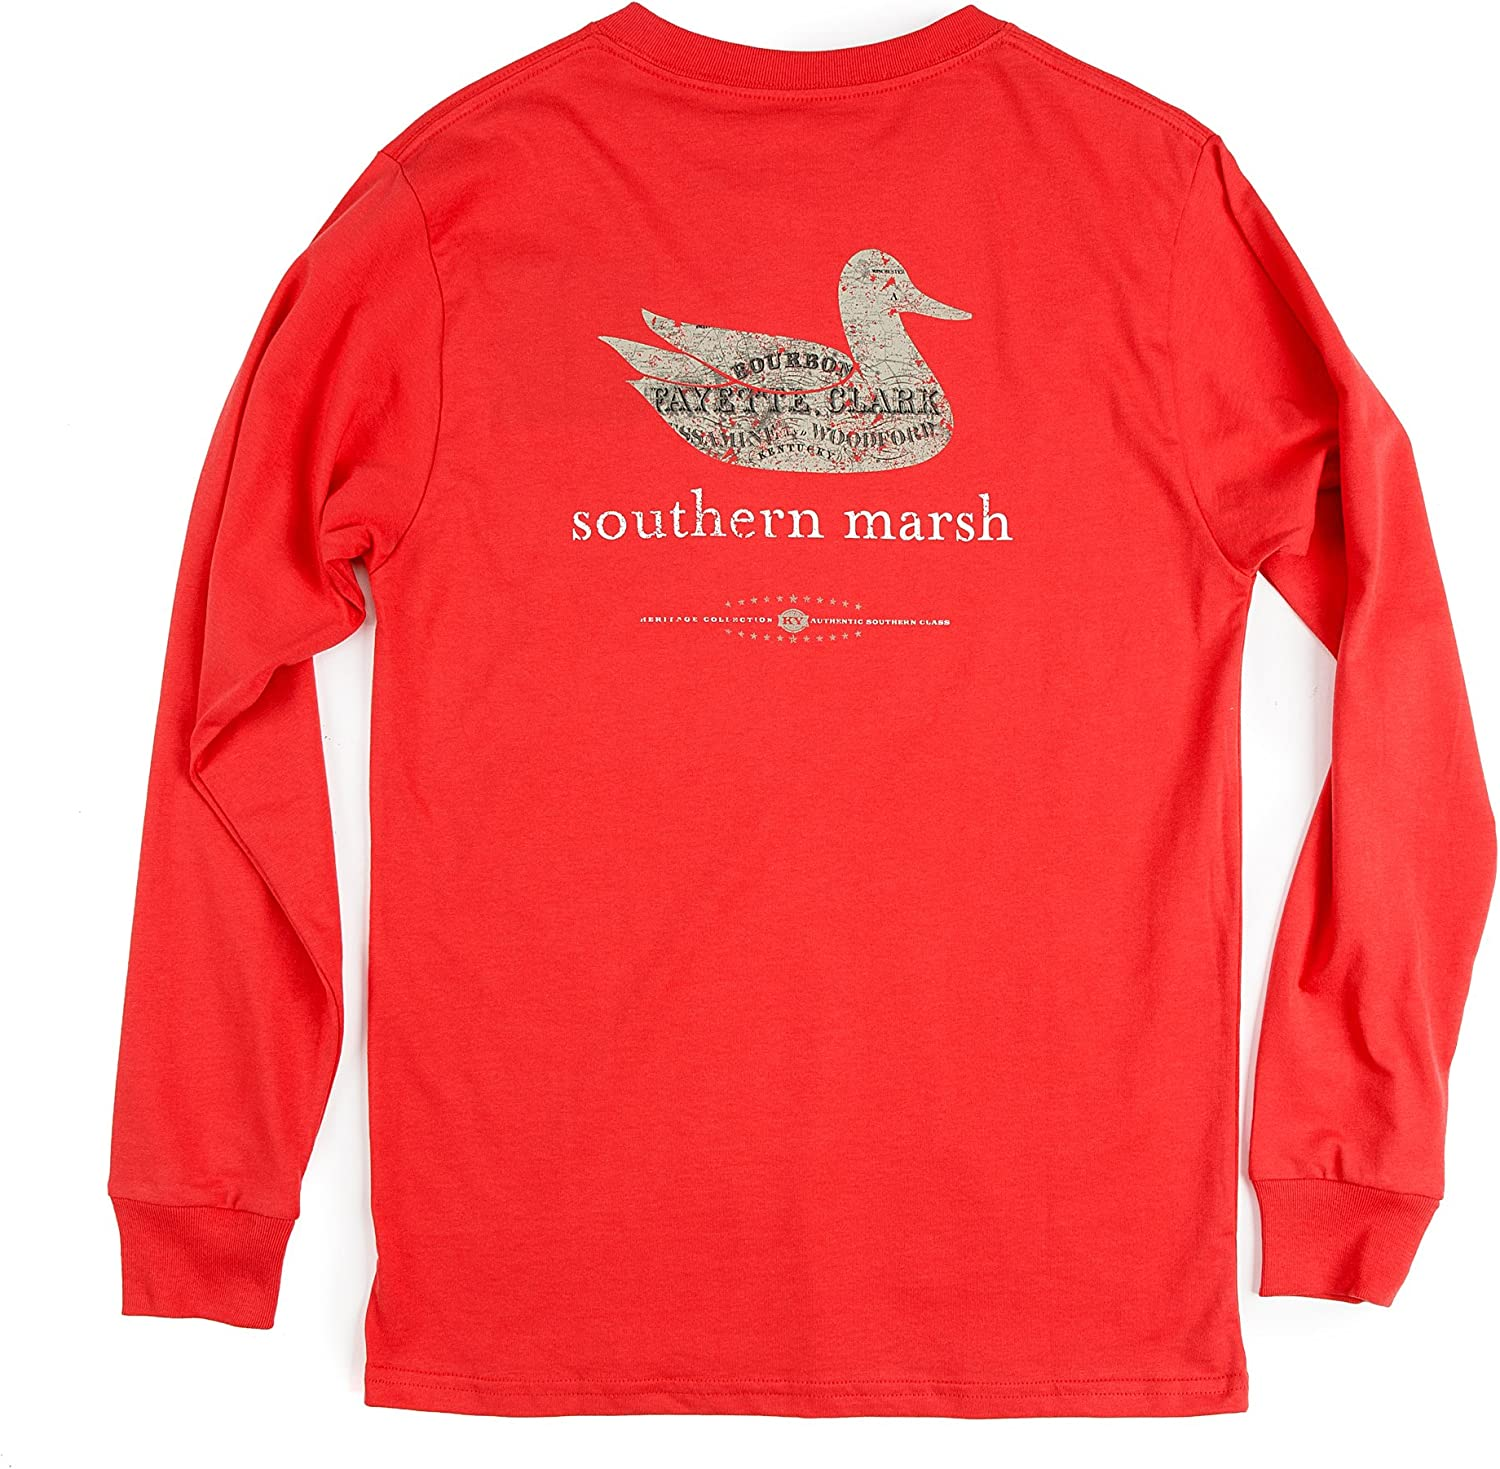 Southern Marsh Ls Authentic Save money Kentucky - Max 62% OFF Heritage